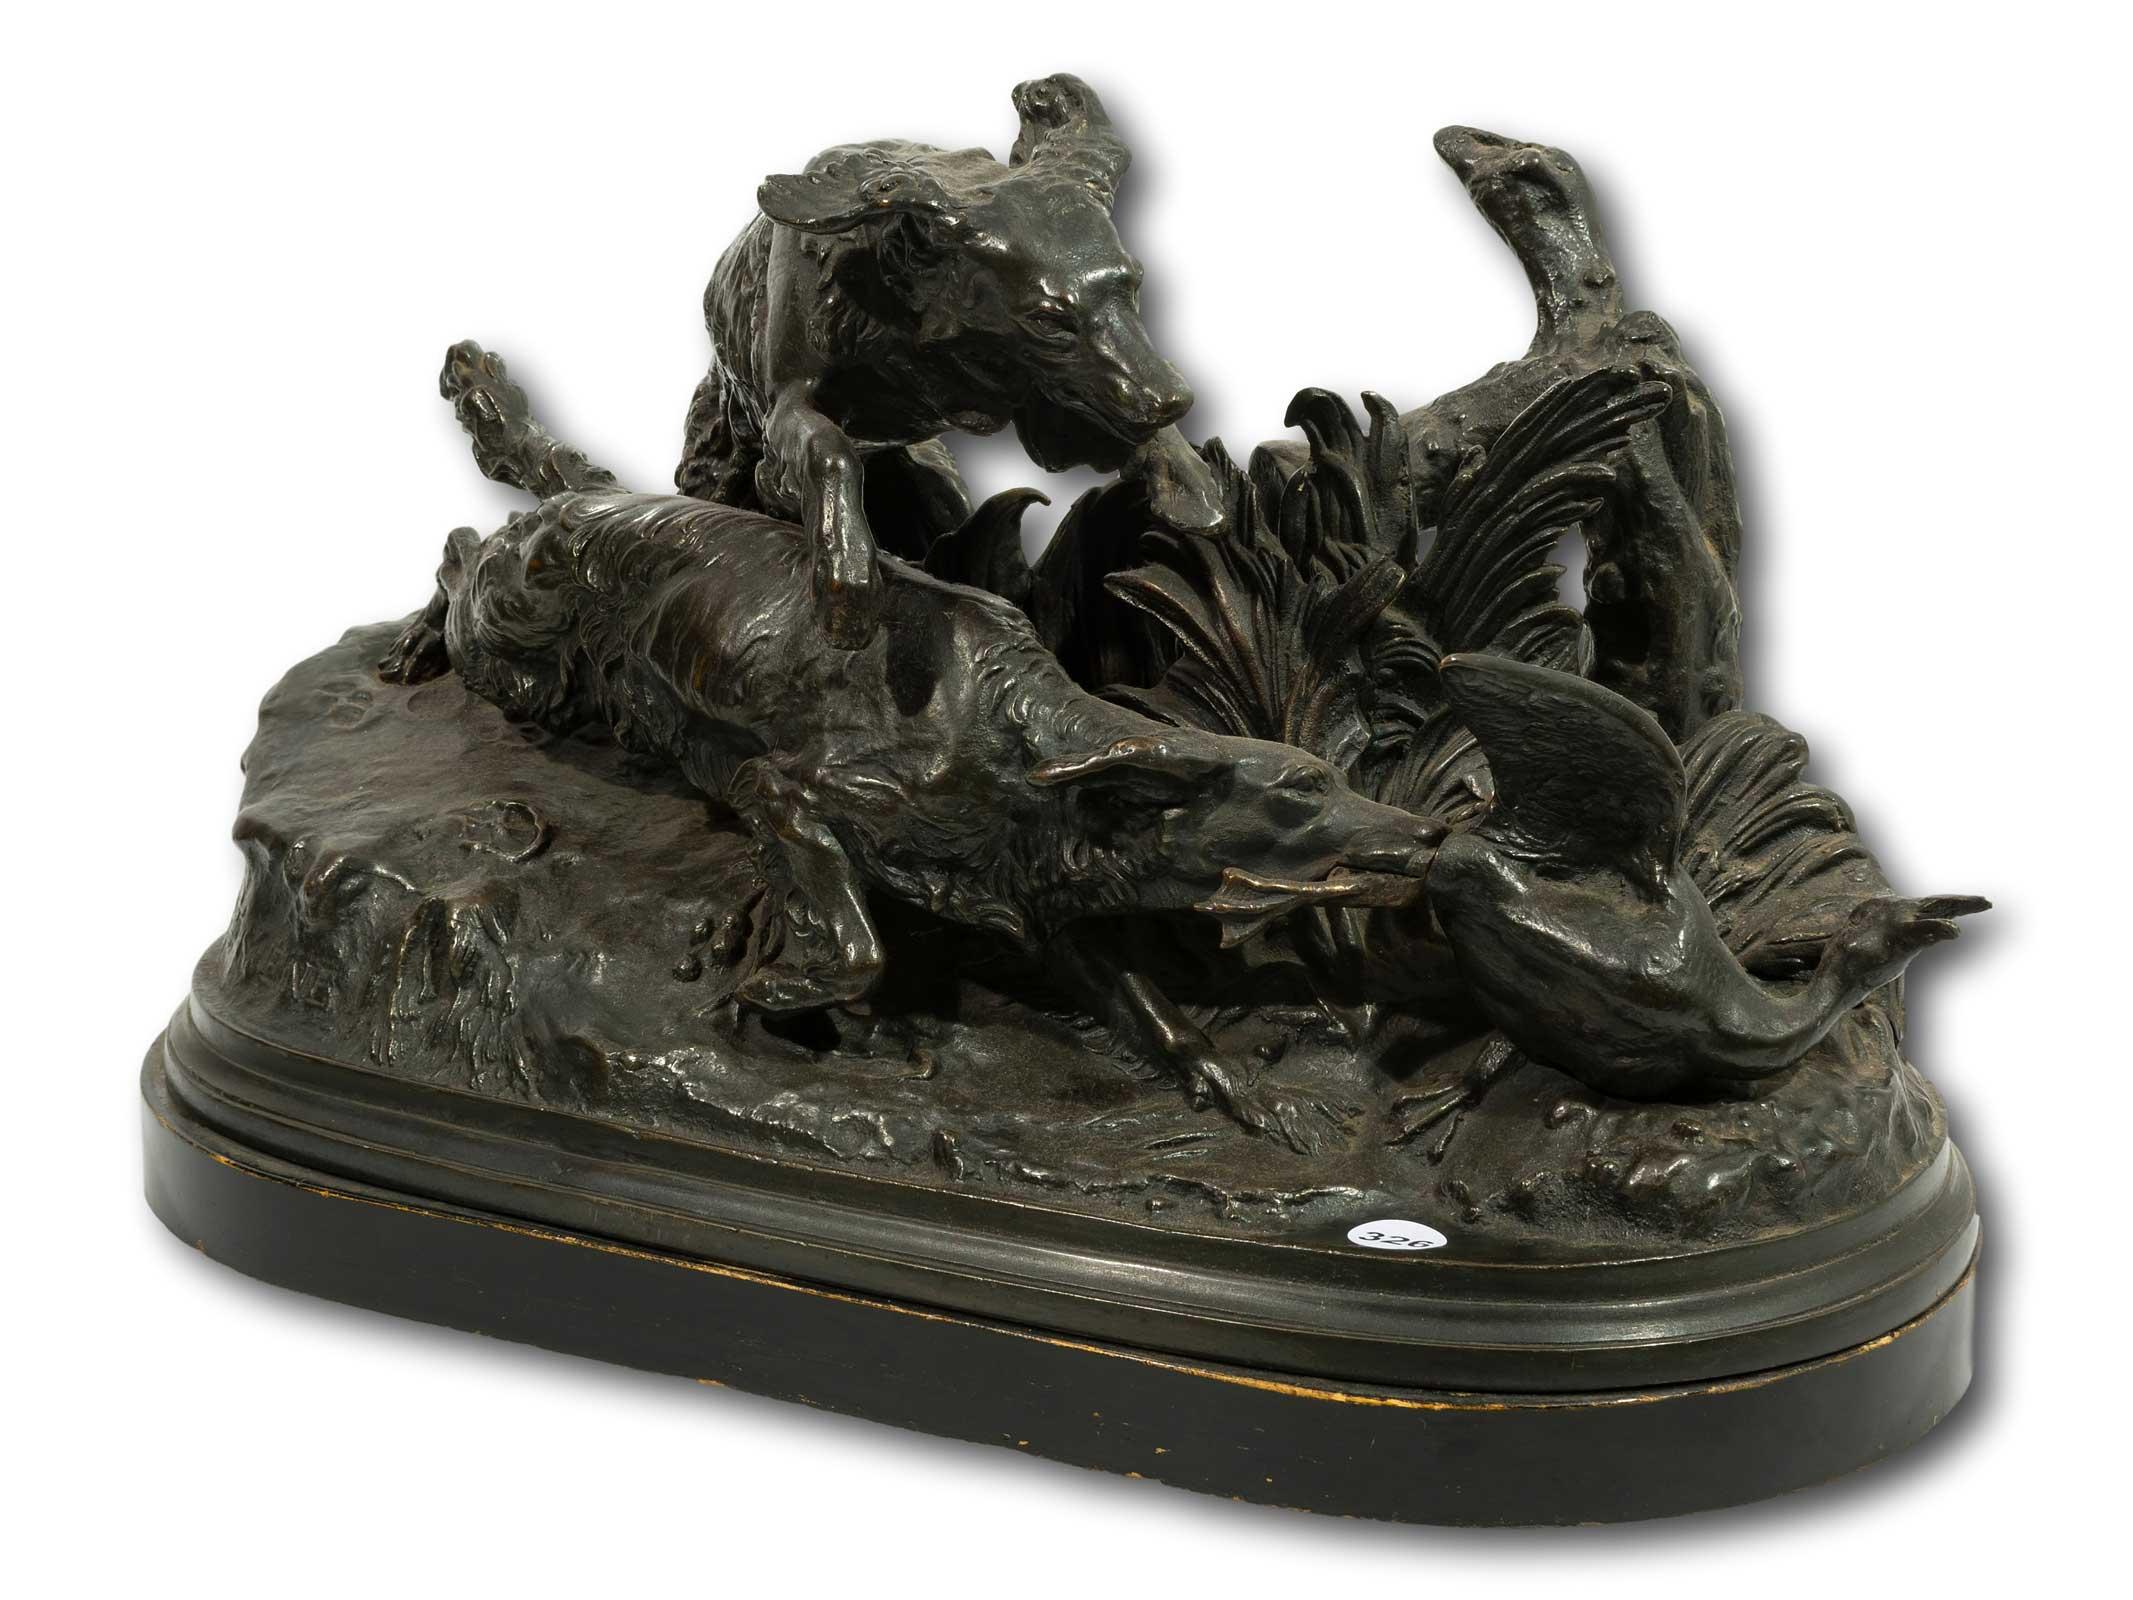 Pierre Jules Mene (French 1810 - 1879) Bronze, 2 Dogs Chasing a Duck, Signed, 27 x 45cm including base